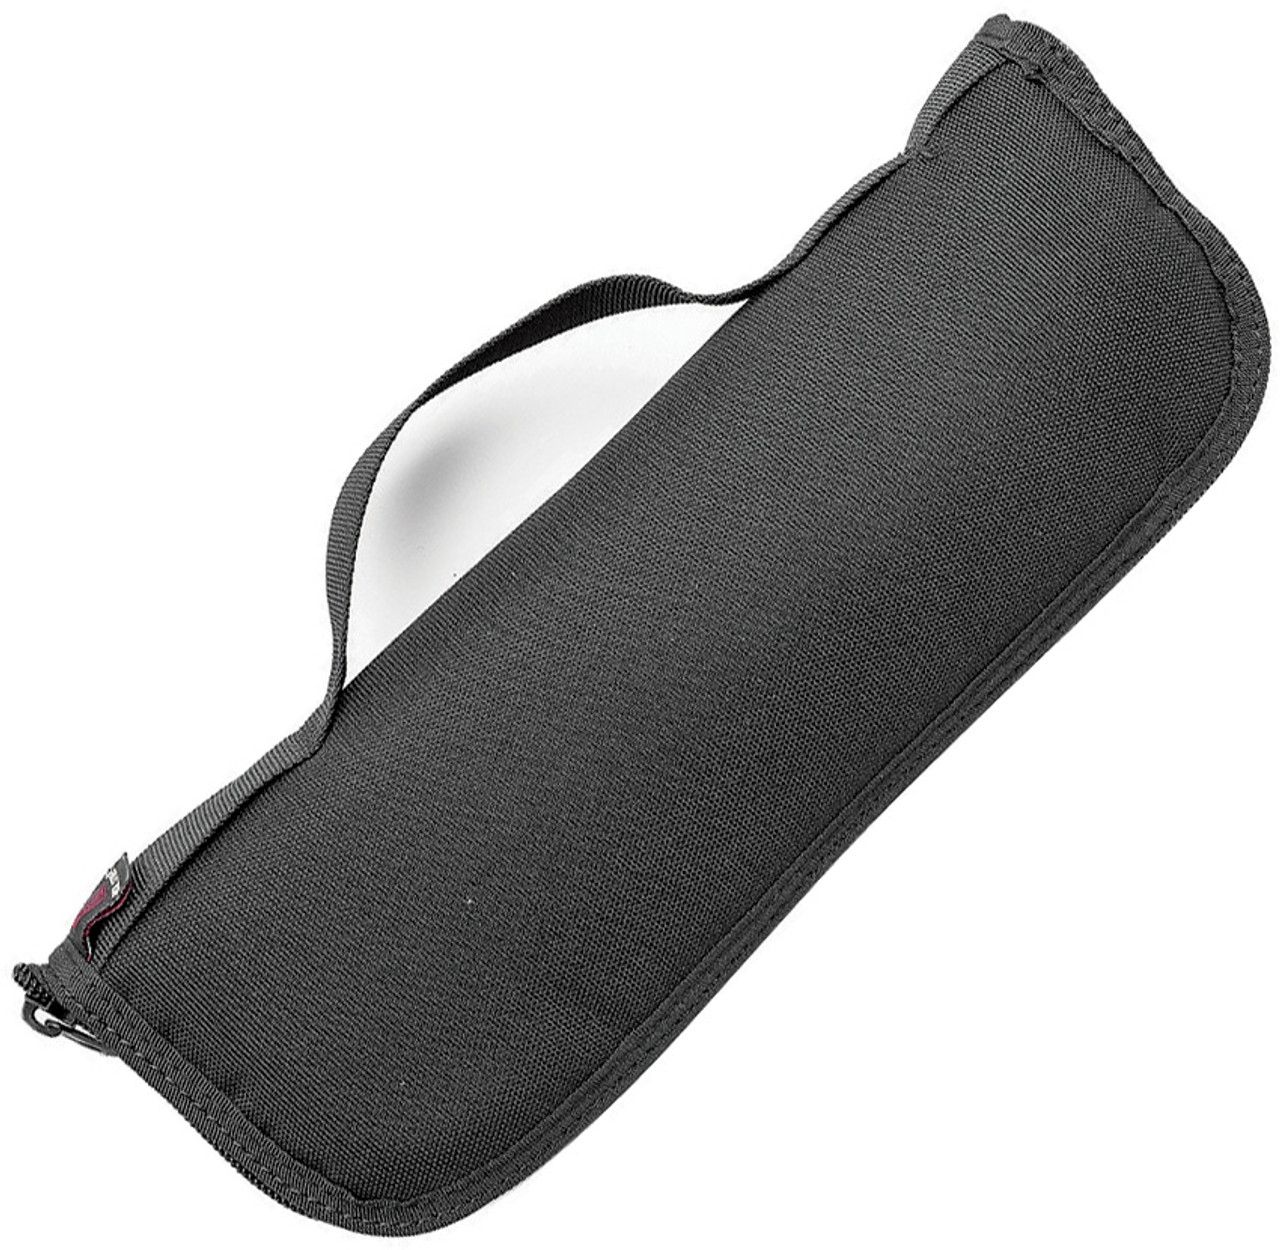 Urban Discreet XL EDC Bag